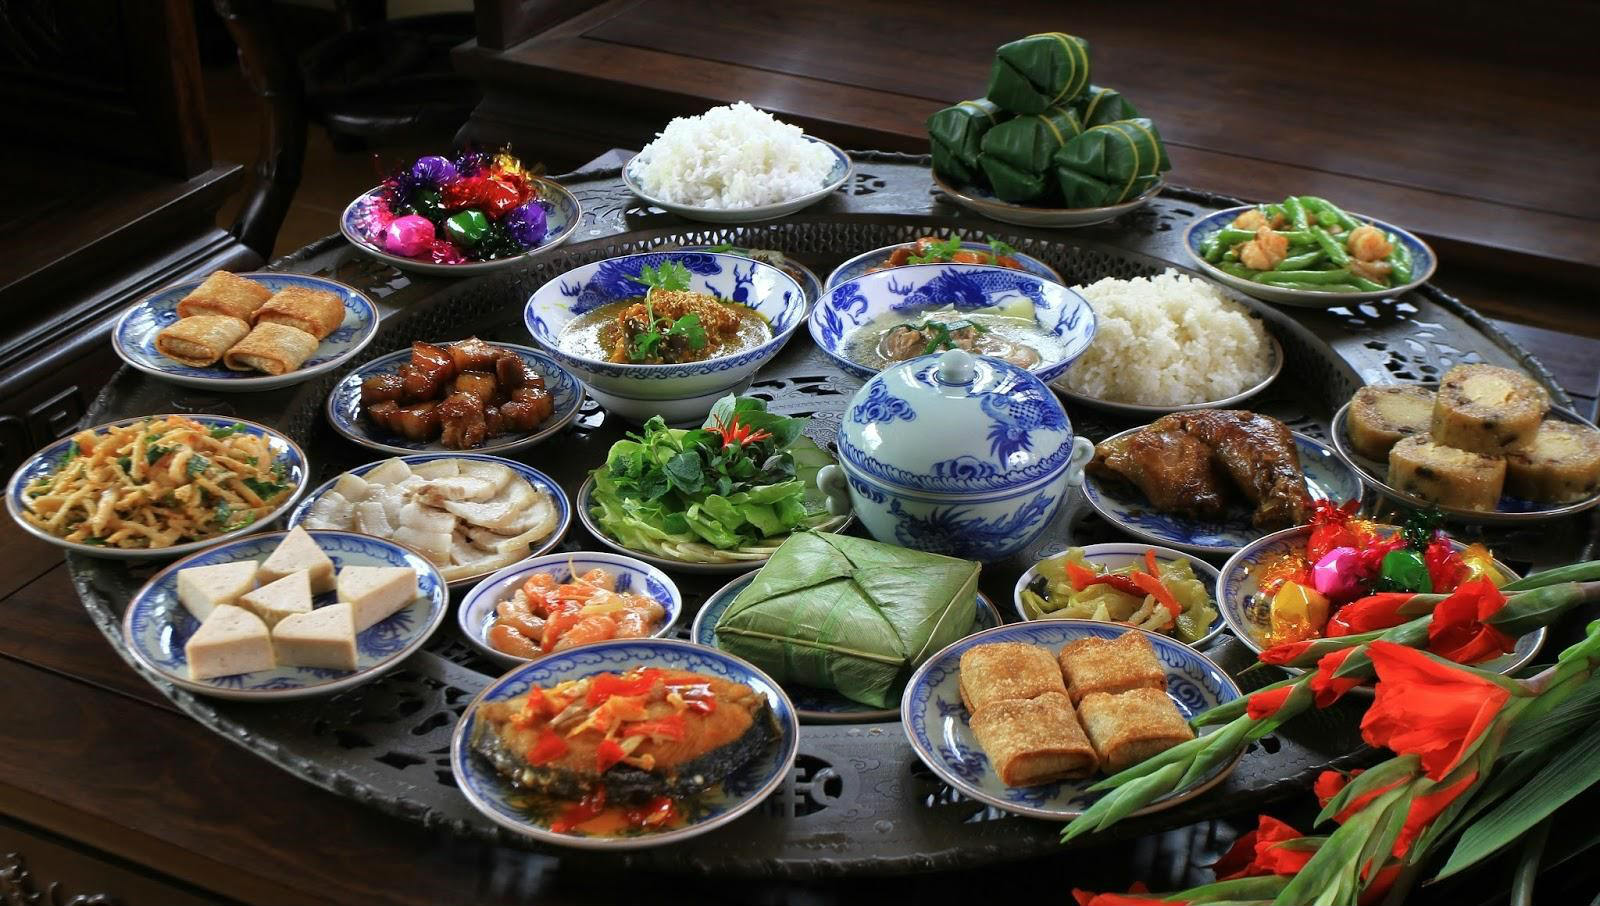 A table arranged with different types of foods